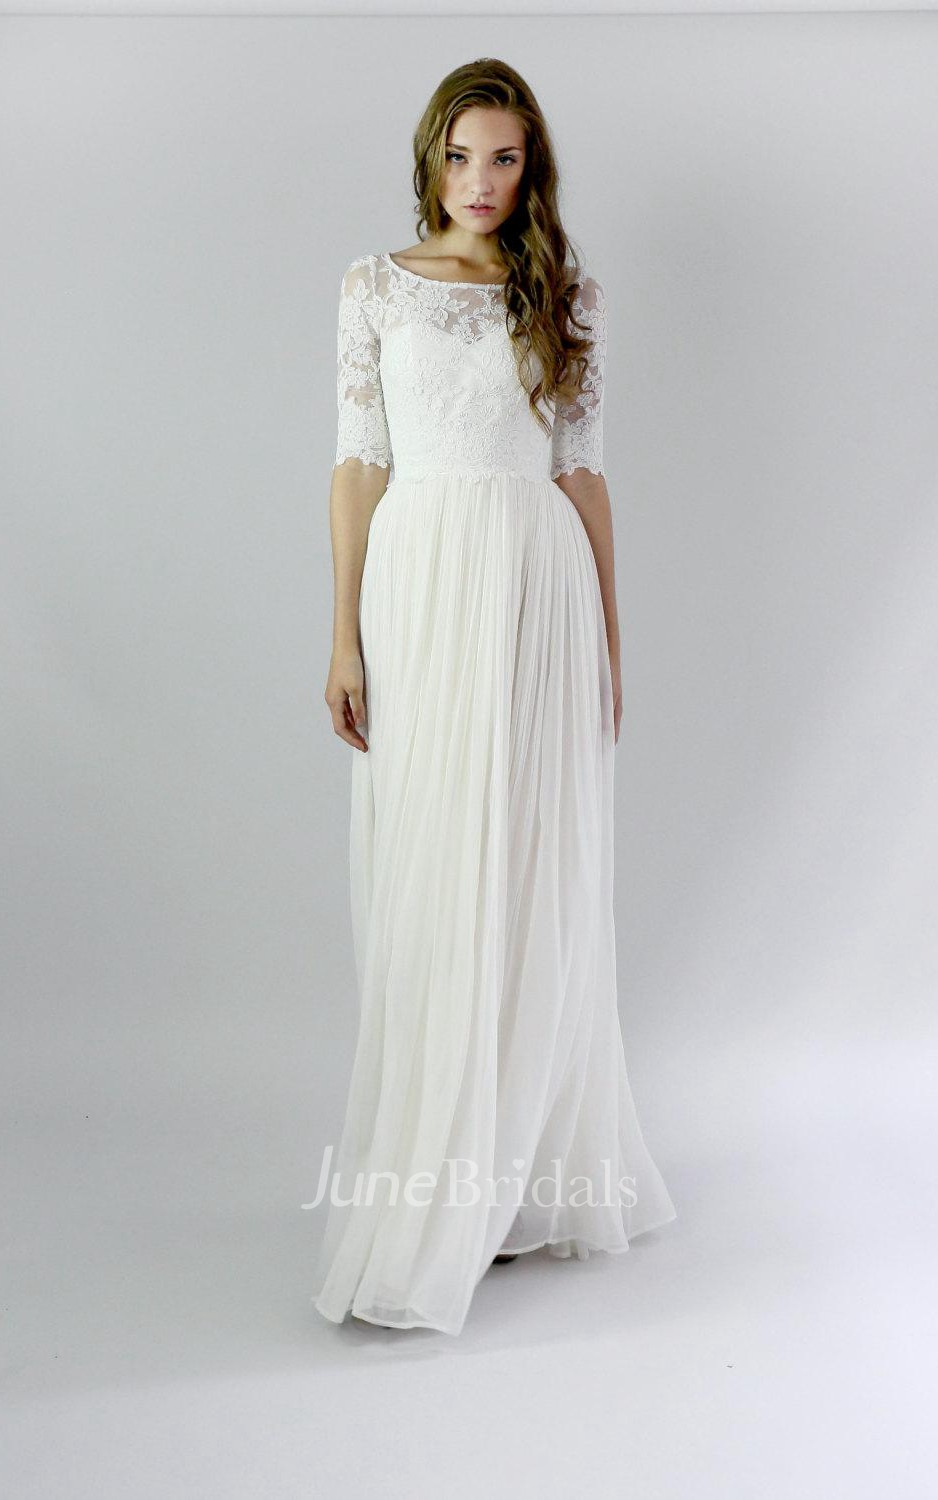 8d4597e7942f Button Back Sheath Chiffon Wedding Dress With Lace And Pleats - June Bridals